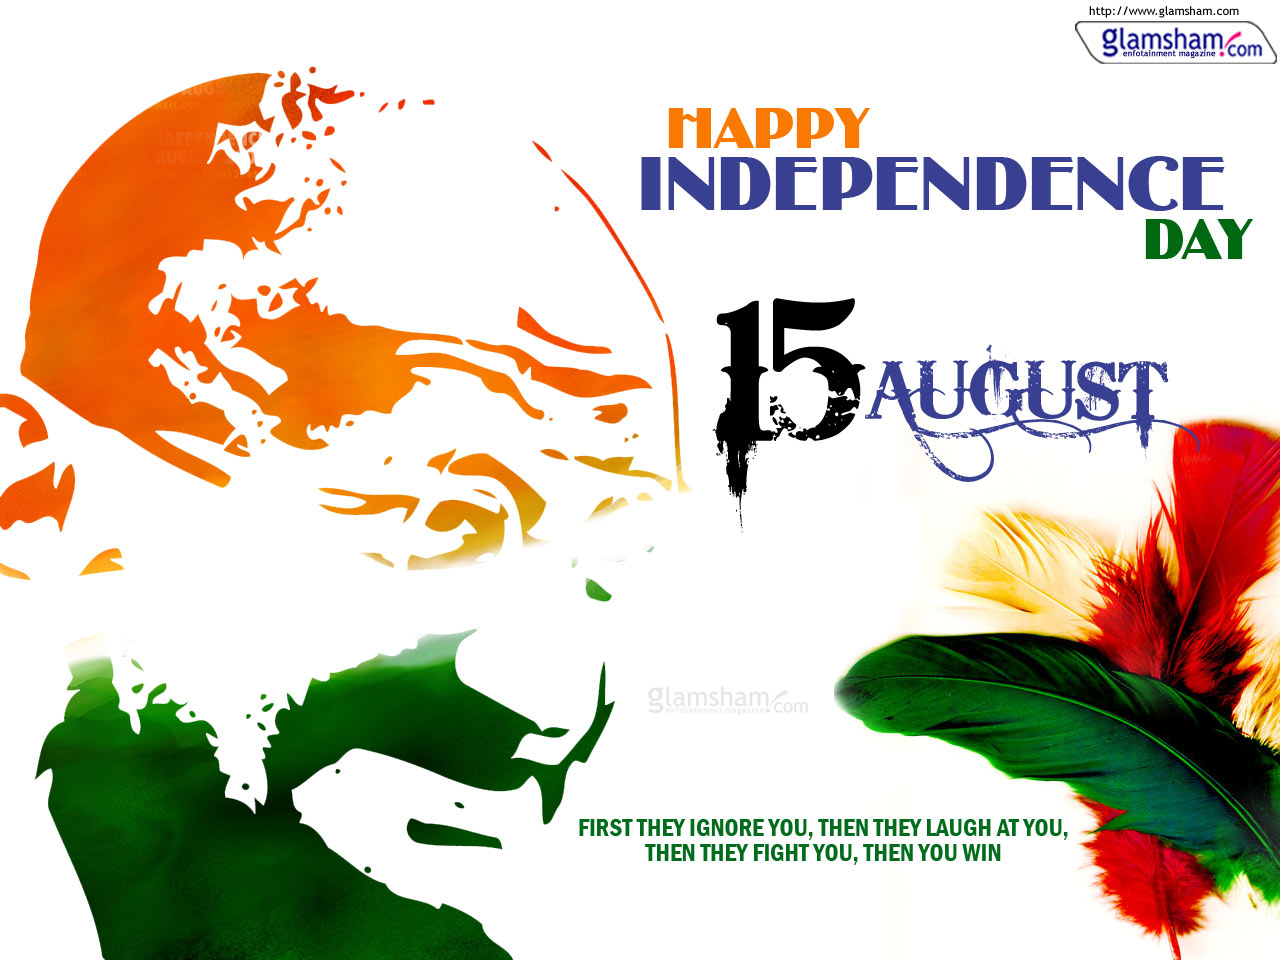 happy independence day clipart for facebook #16